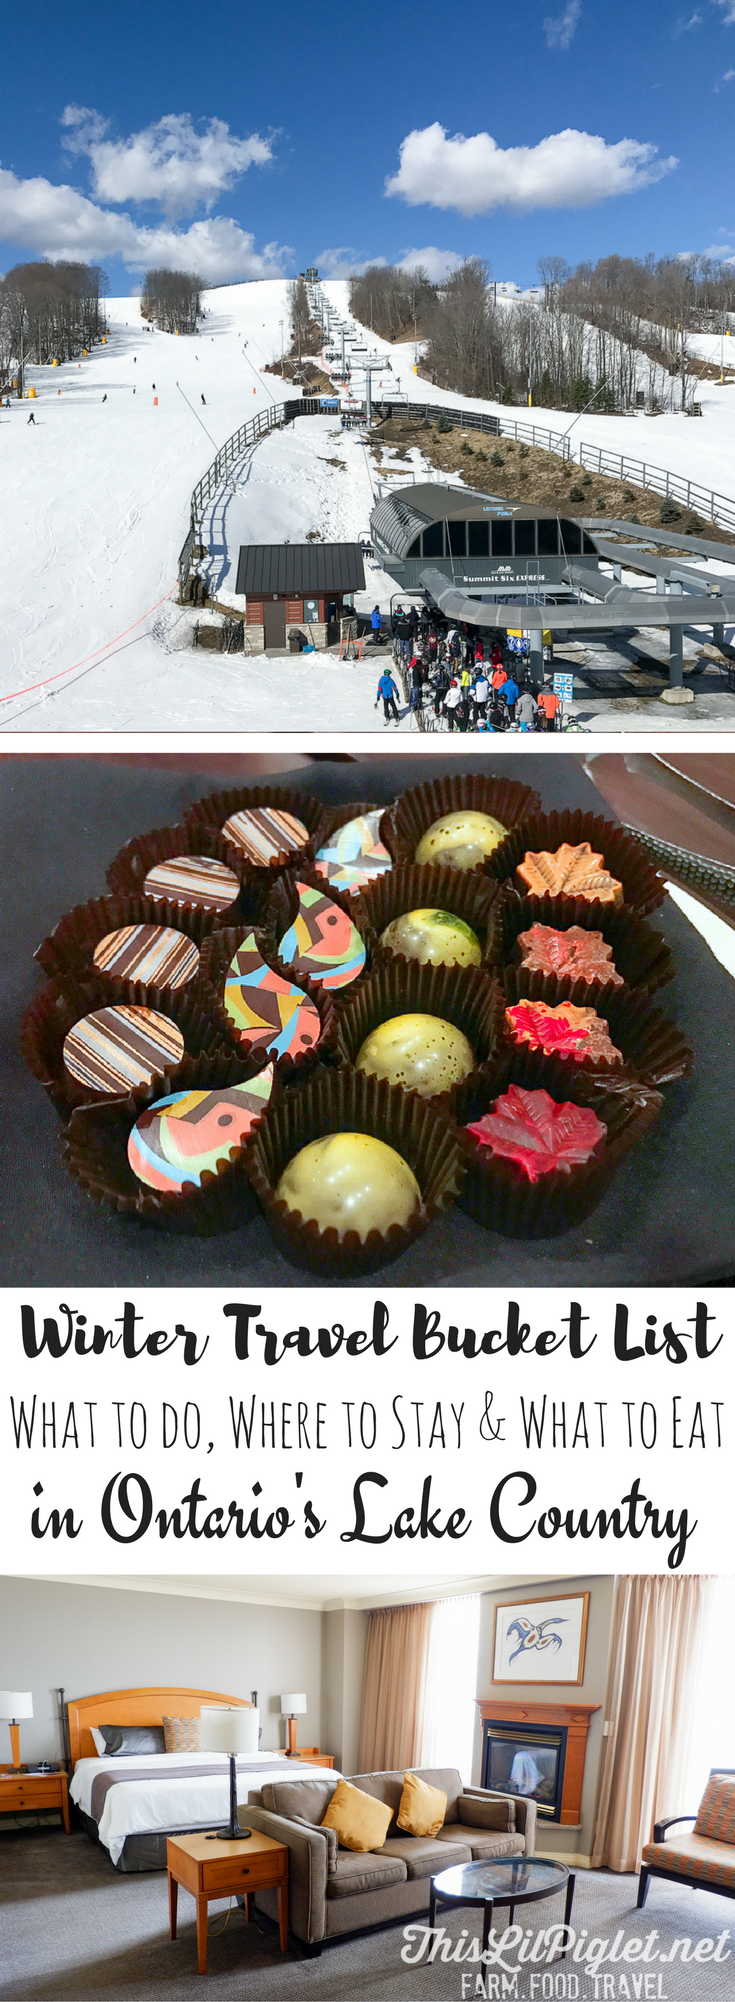 Winter Travel Bucket List: Where to Stay, What to Do and What to Eat in Ontario's Lake Country // thislilpiglet.net